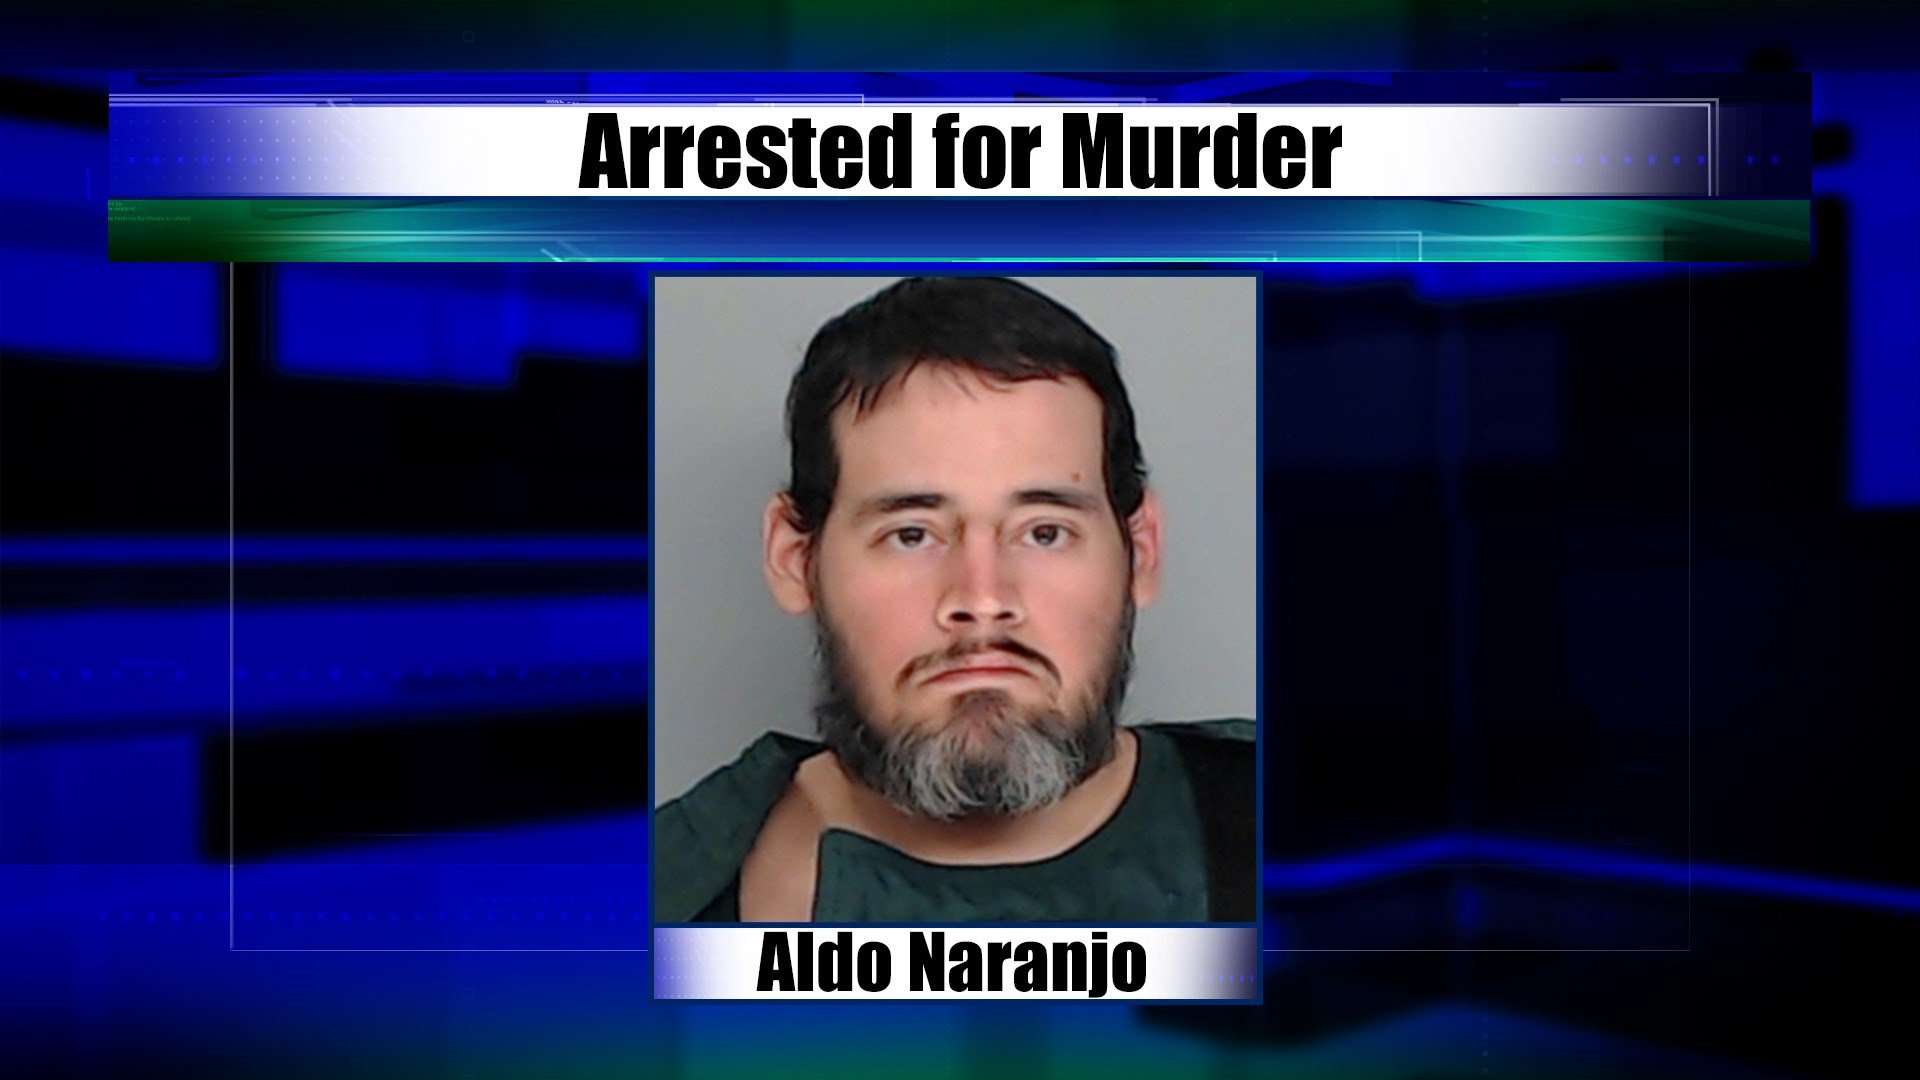 Aldo Naranjo, 38, is being charged with murder